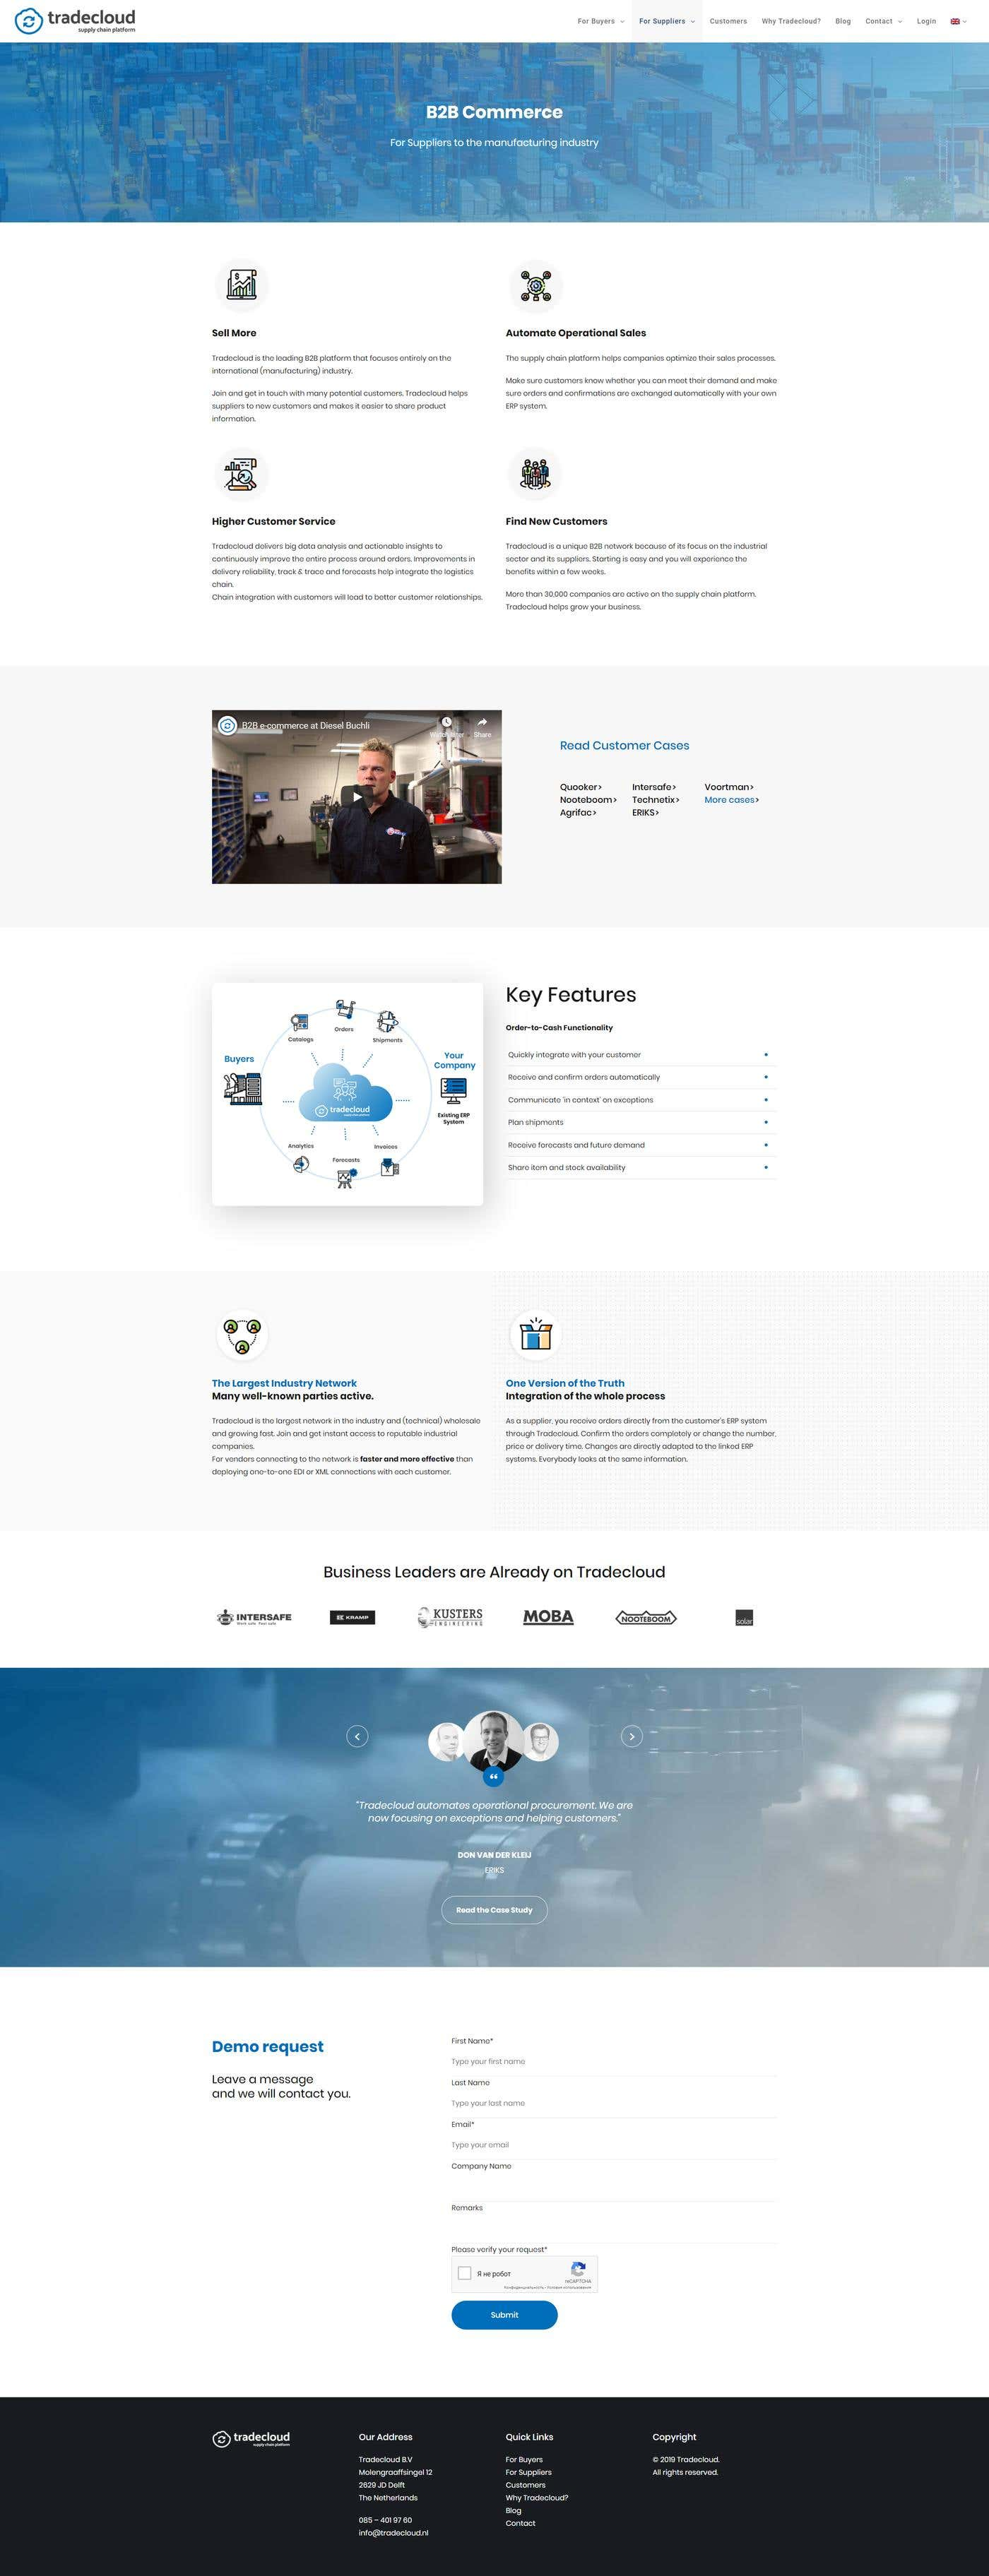 screencapture-tradecloud1-en-b2b-ecommerce-platform-for-sellers-2019-04-22-15_42_42.png